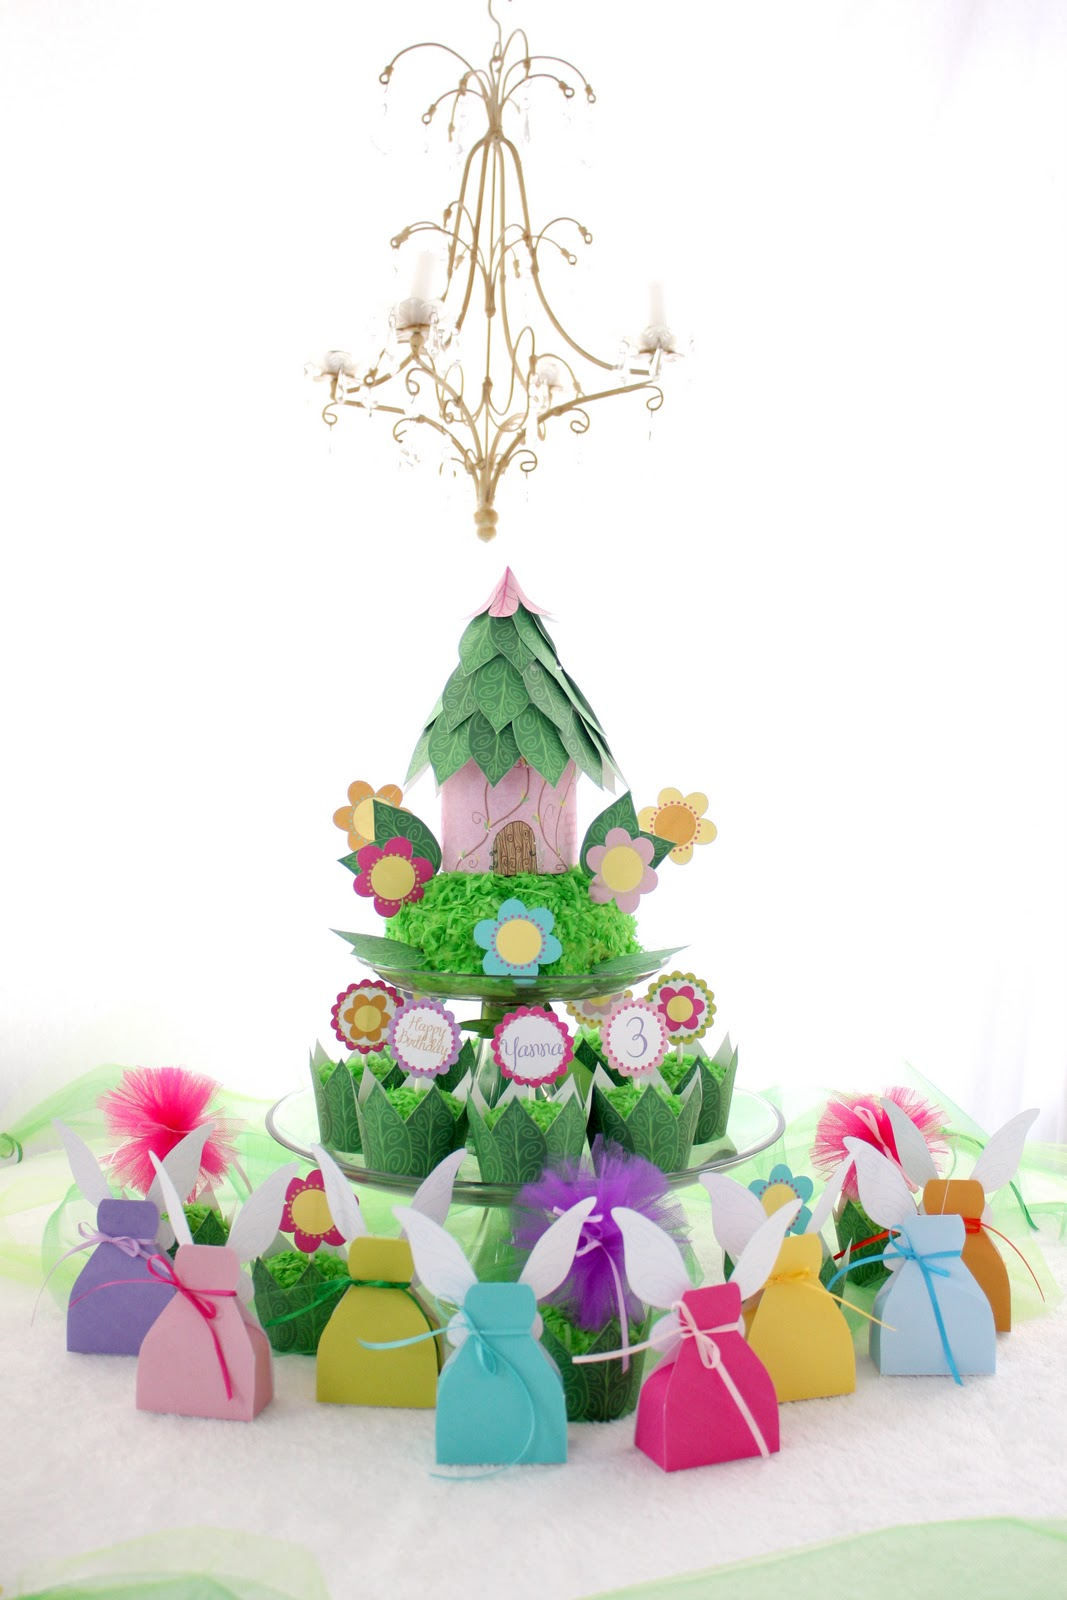 Garden birthday cake clipart vector library library The Everyday Posh: Fairy Princess Garden Party! Happy Birthday Yanna! vector library library